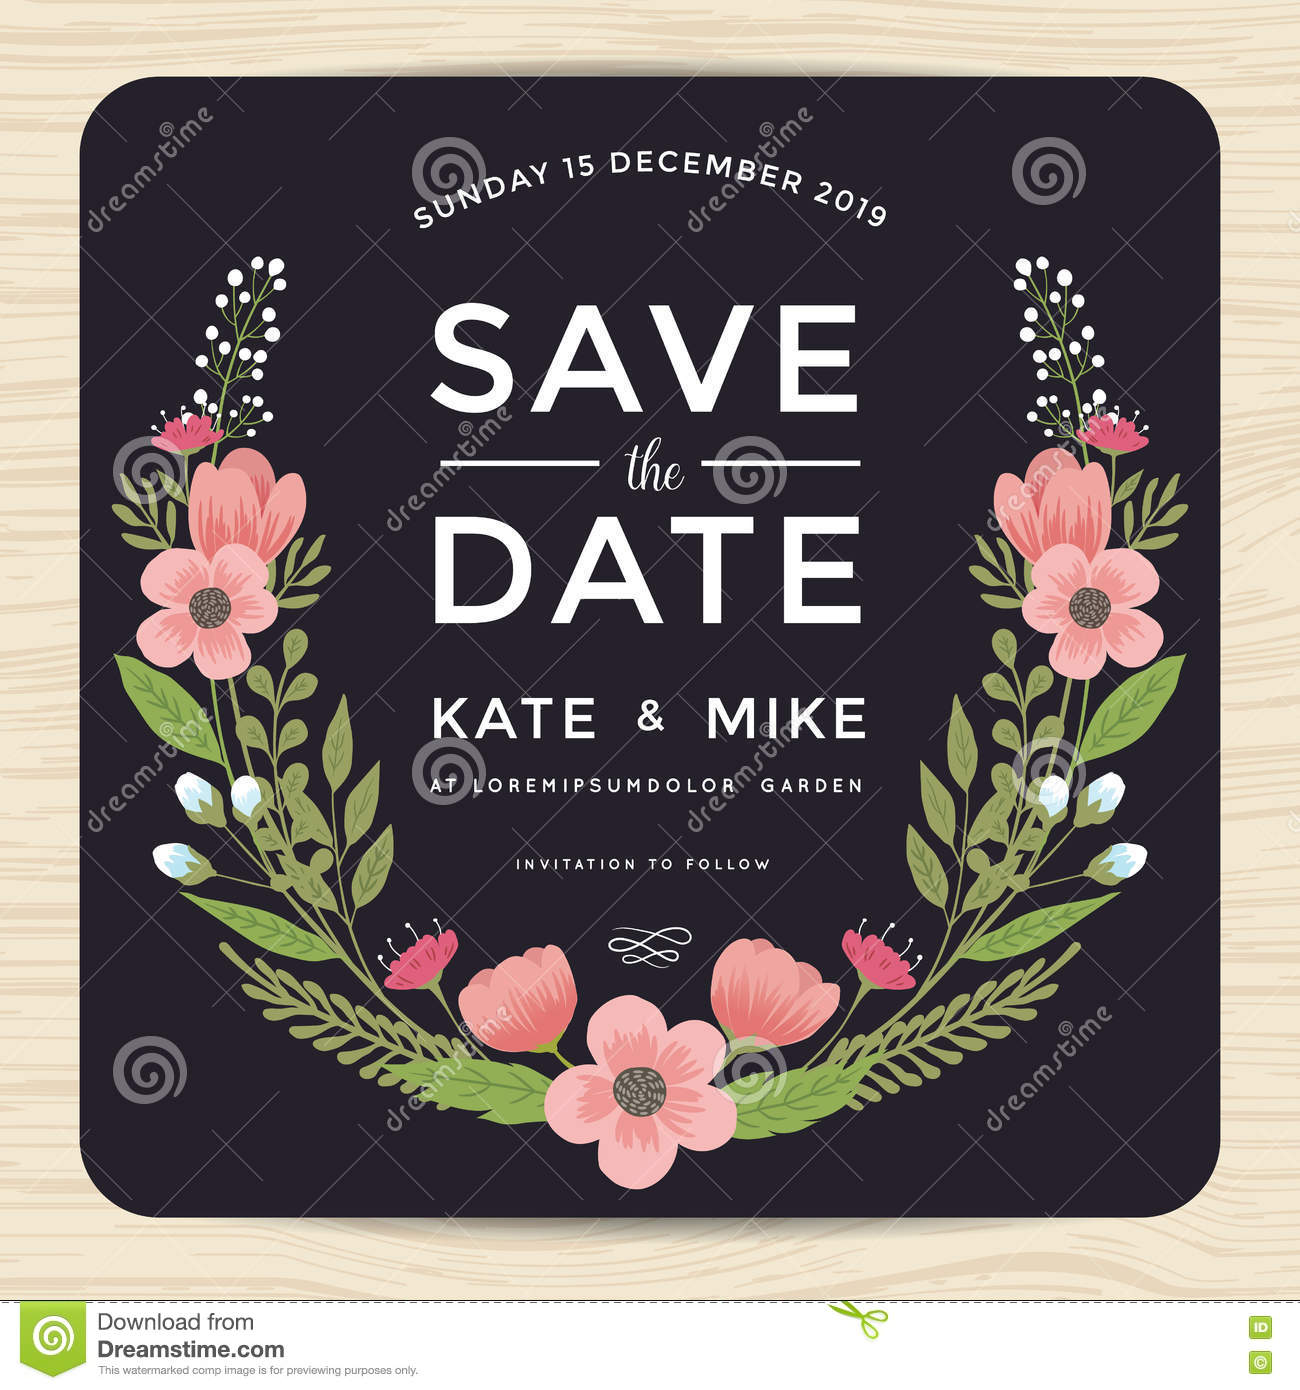 Save The Date Wedding Invitation Card With Hand Drawn Wreath Flower